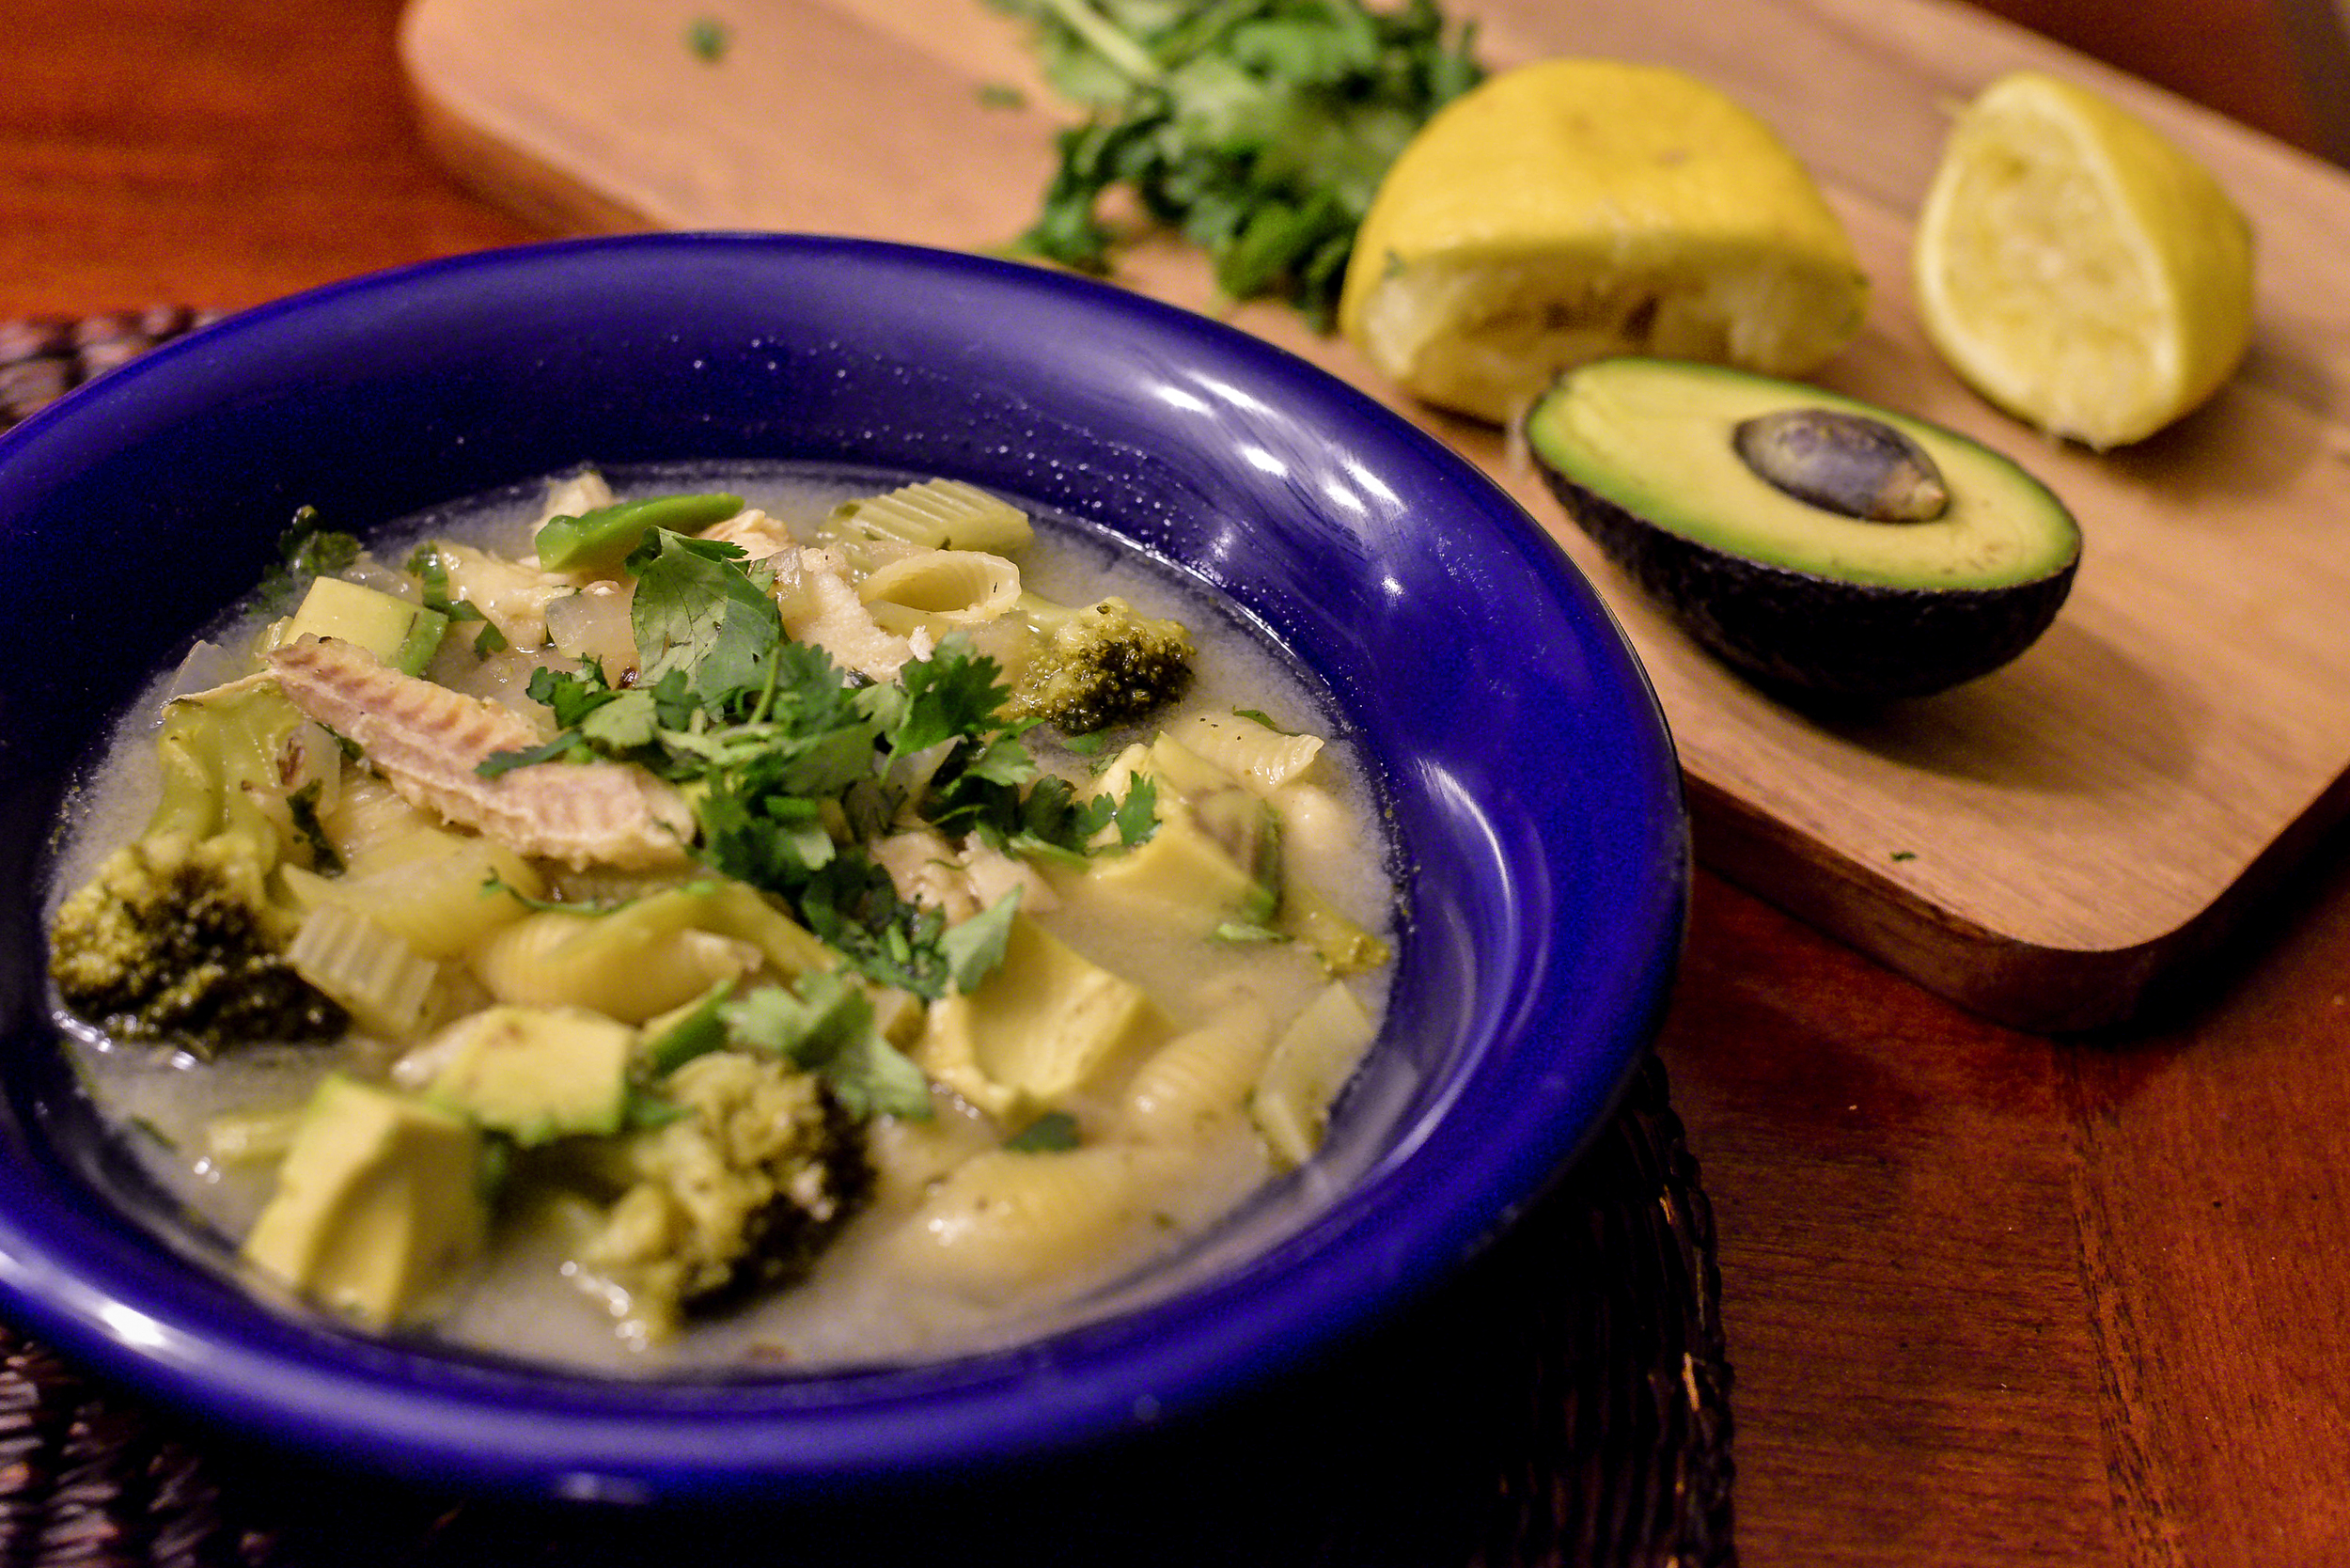 Plated Lemon Fish Soup with Pasta and Broccoli. Serve with a side of crusty bread or hot cheese quesadillas. Delicious!